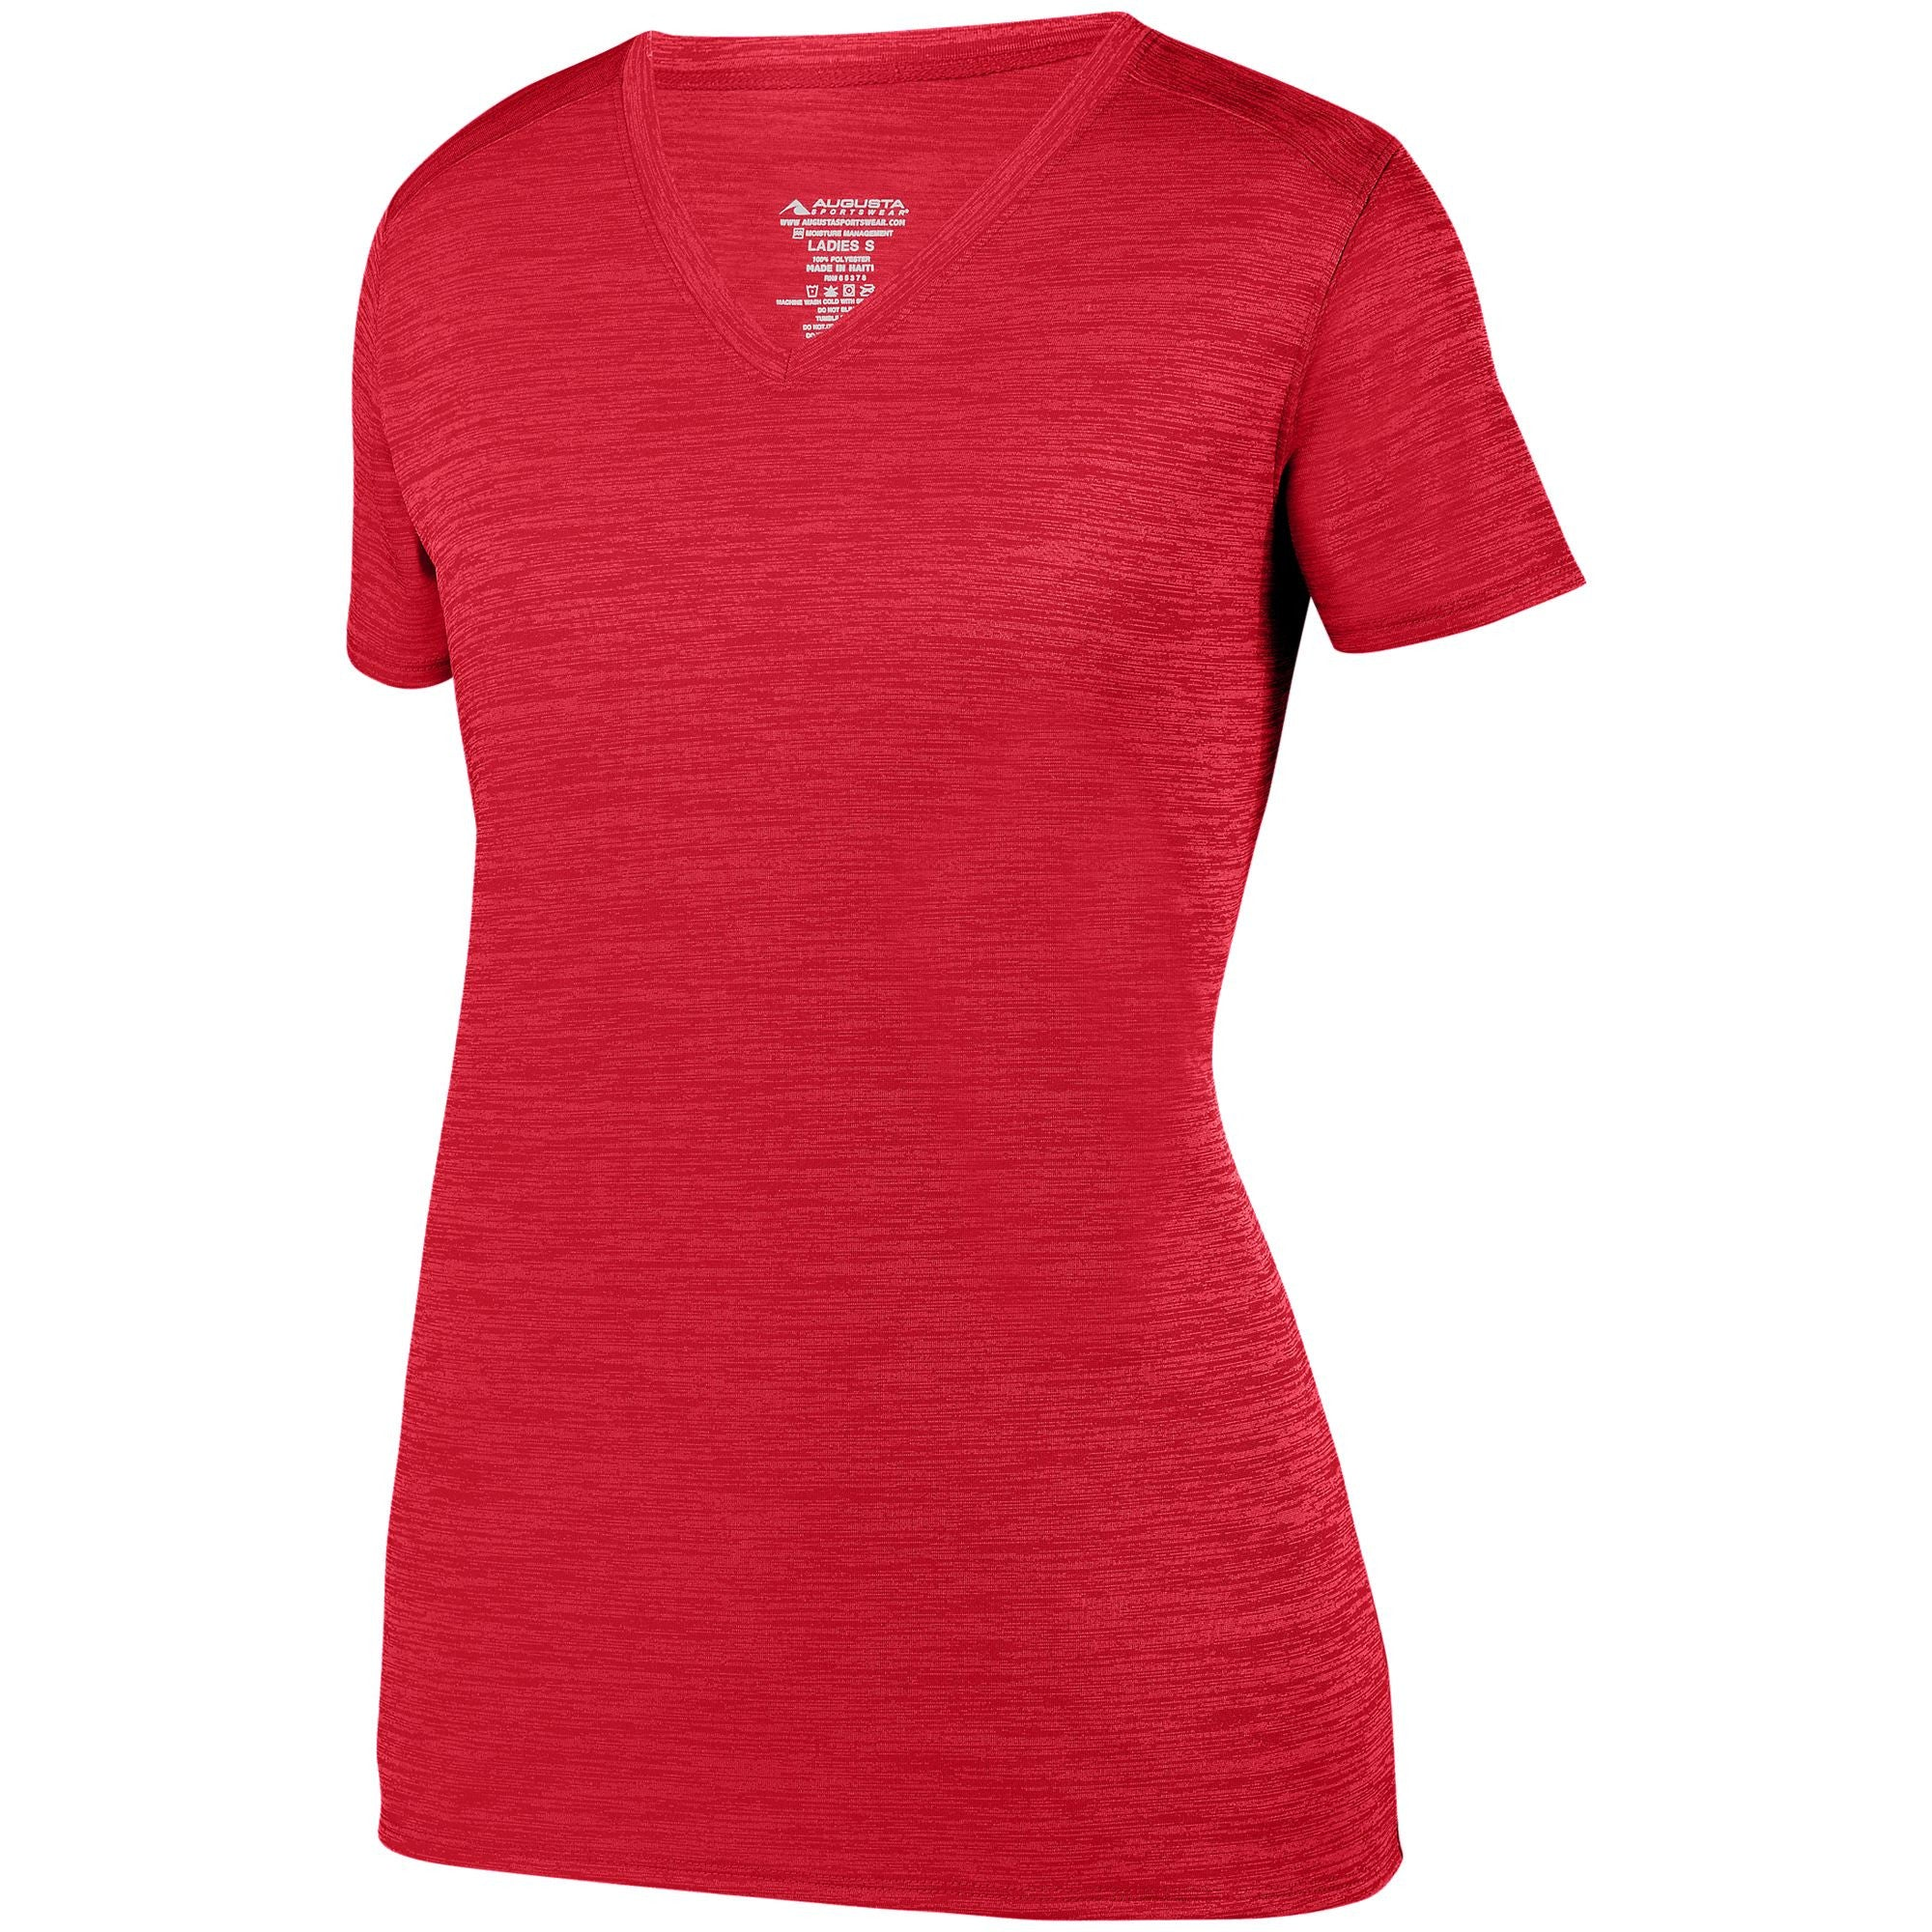 Augusta 2902 Ladies Shadow Tonal Heather Training Tee - Red - HIT A Double